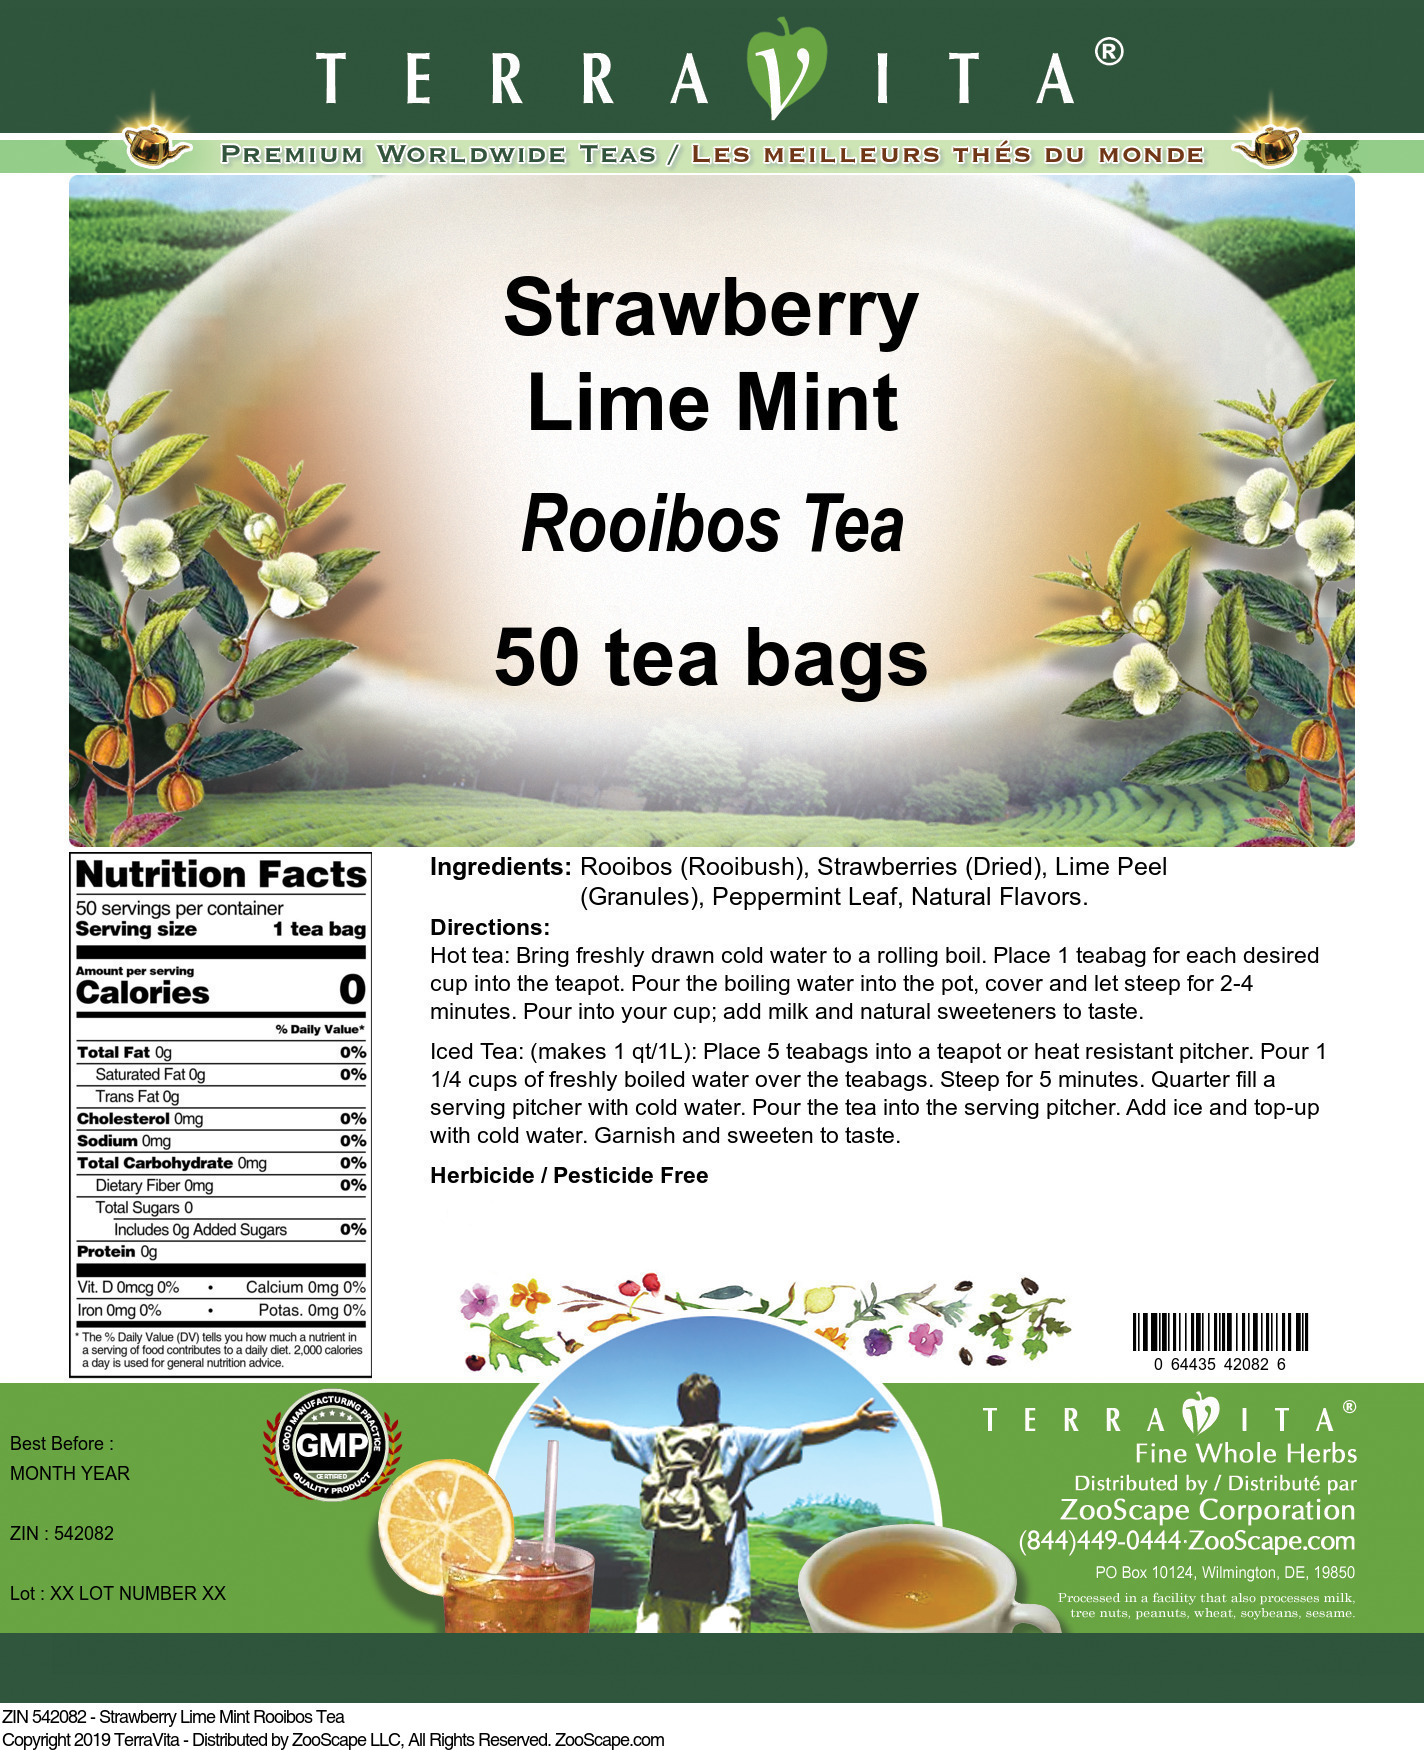 Strawberry Lime Mint Rooibos Tea